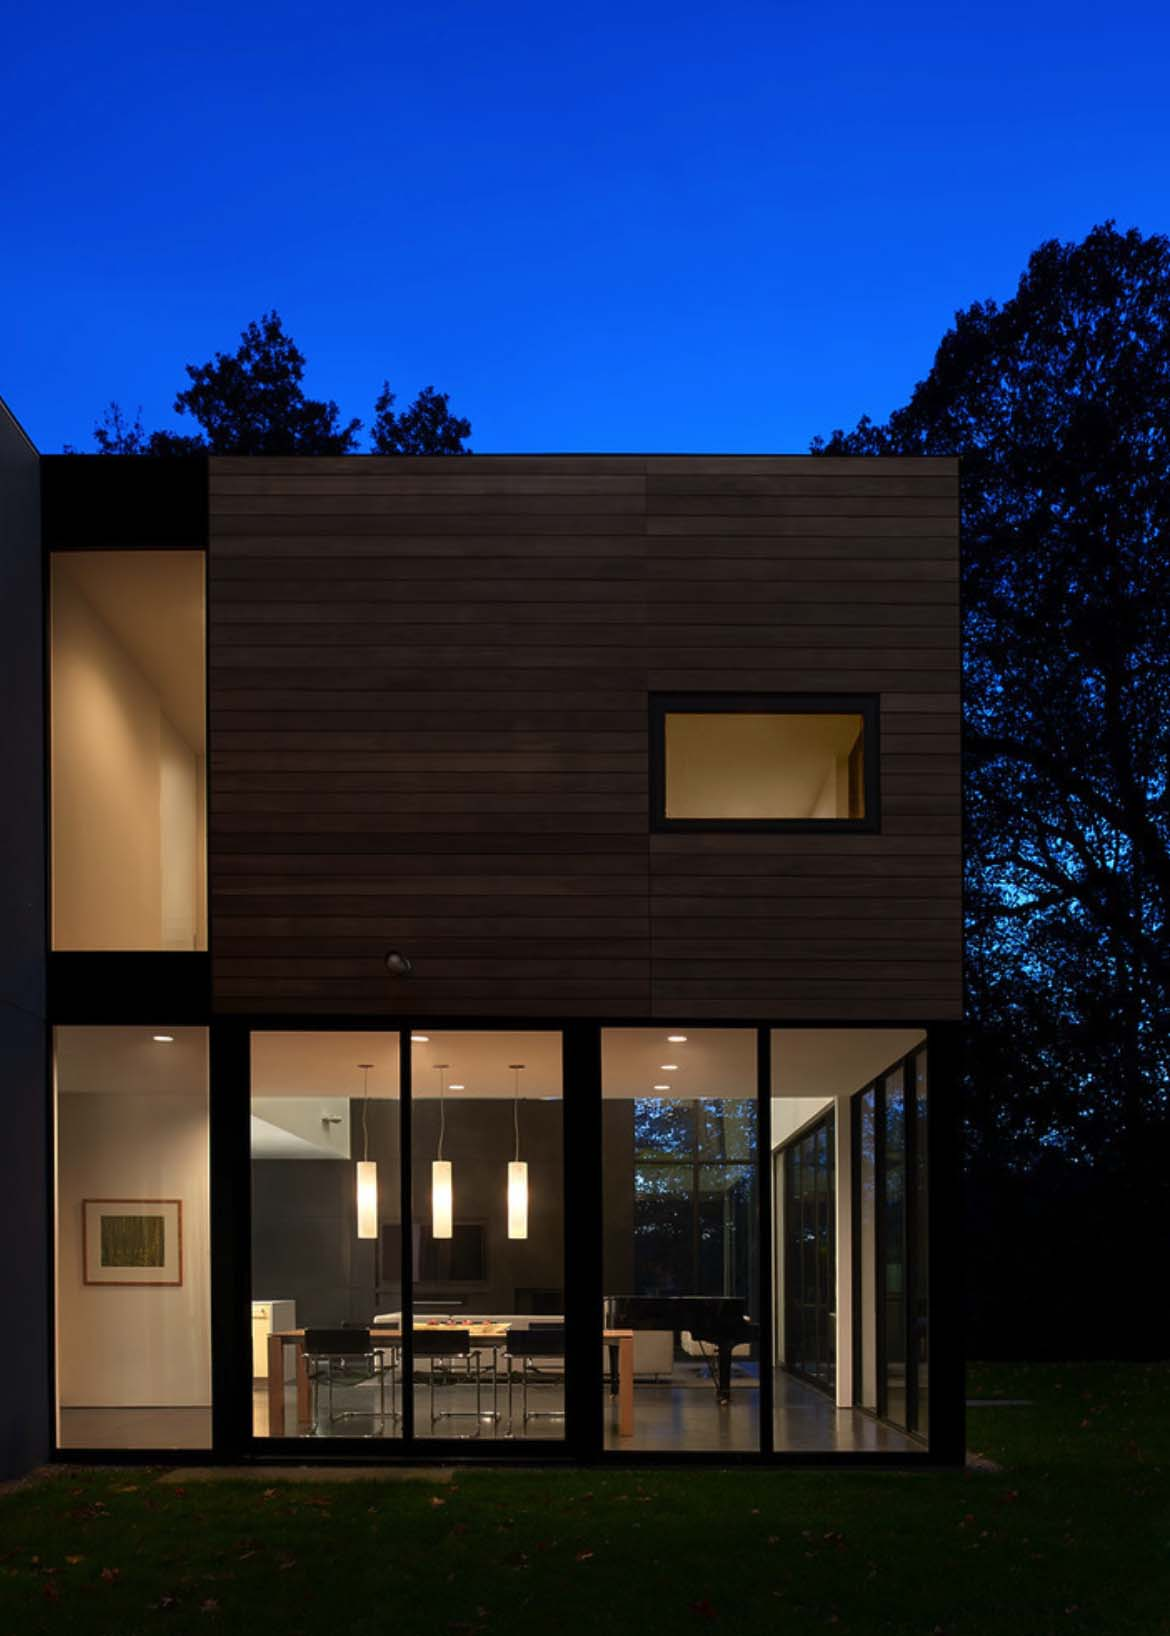 Architecture Modern Home-Robert Gurney Architect-27-1 Kindesign